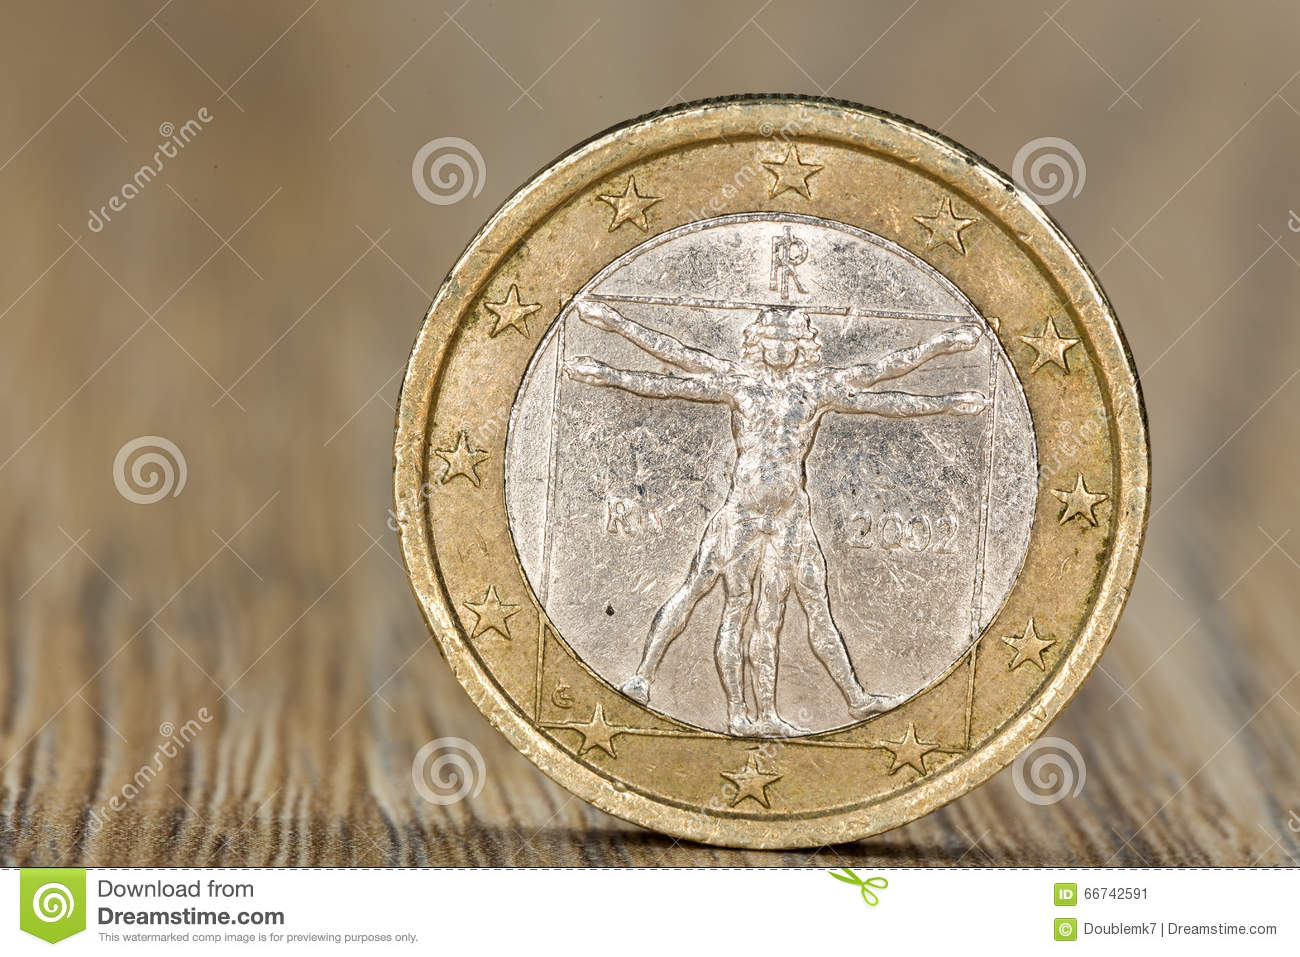 Close up of a Italian one euro coin